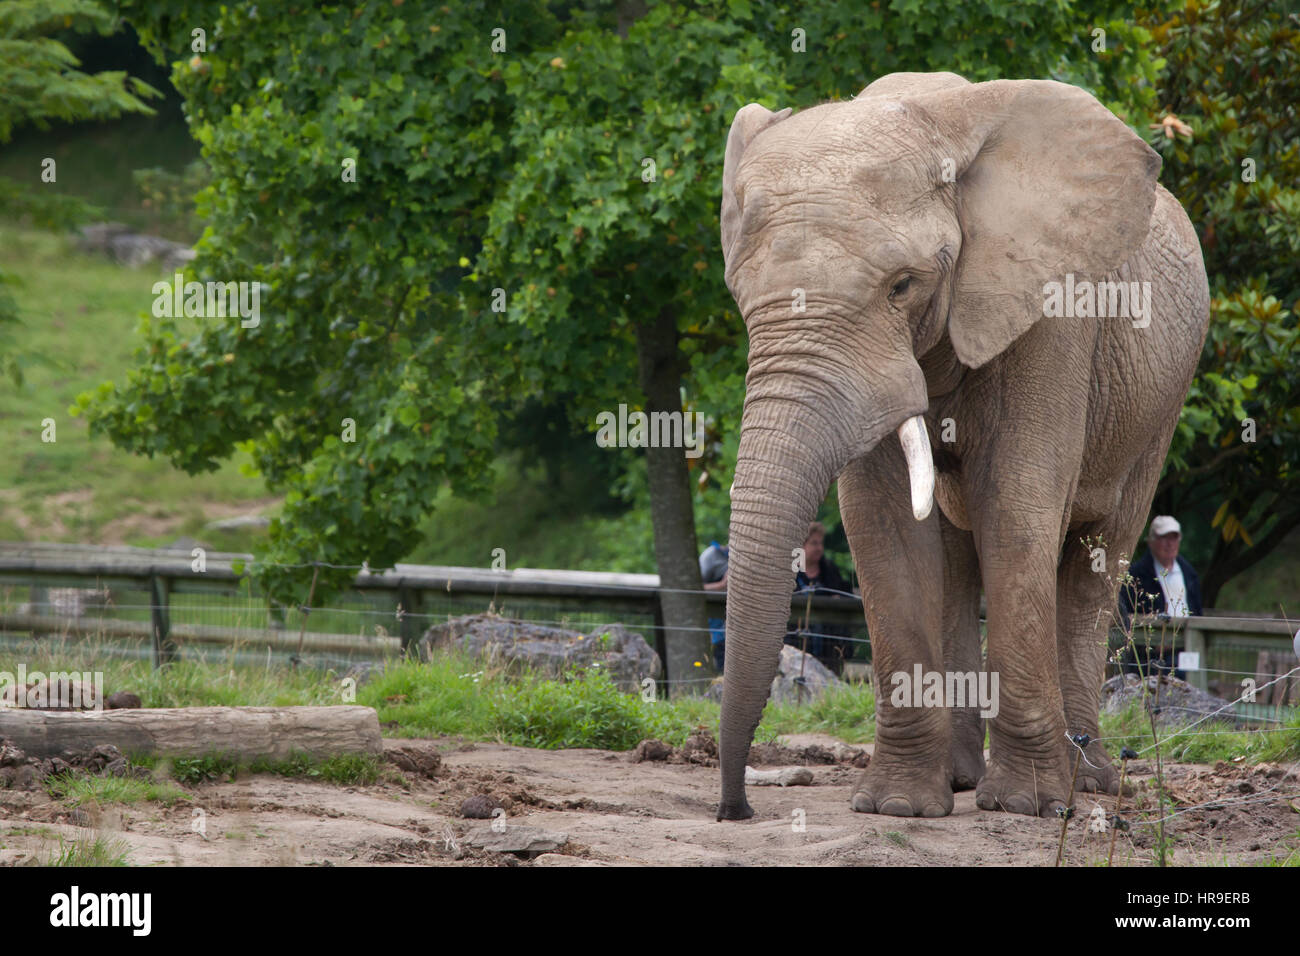 isitors look at the African bush elephant (Loxodonta africana) at Beauval Zoo in Saint-Aignan sur Cher, Loir-et - Stock Image